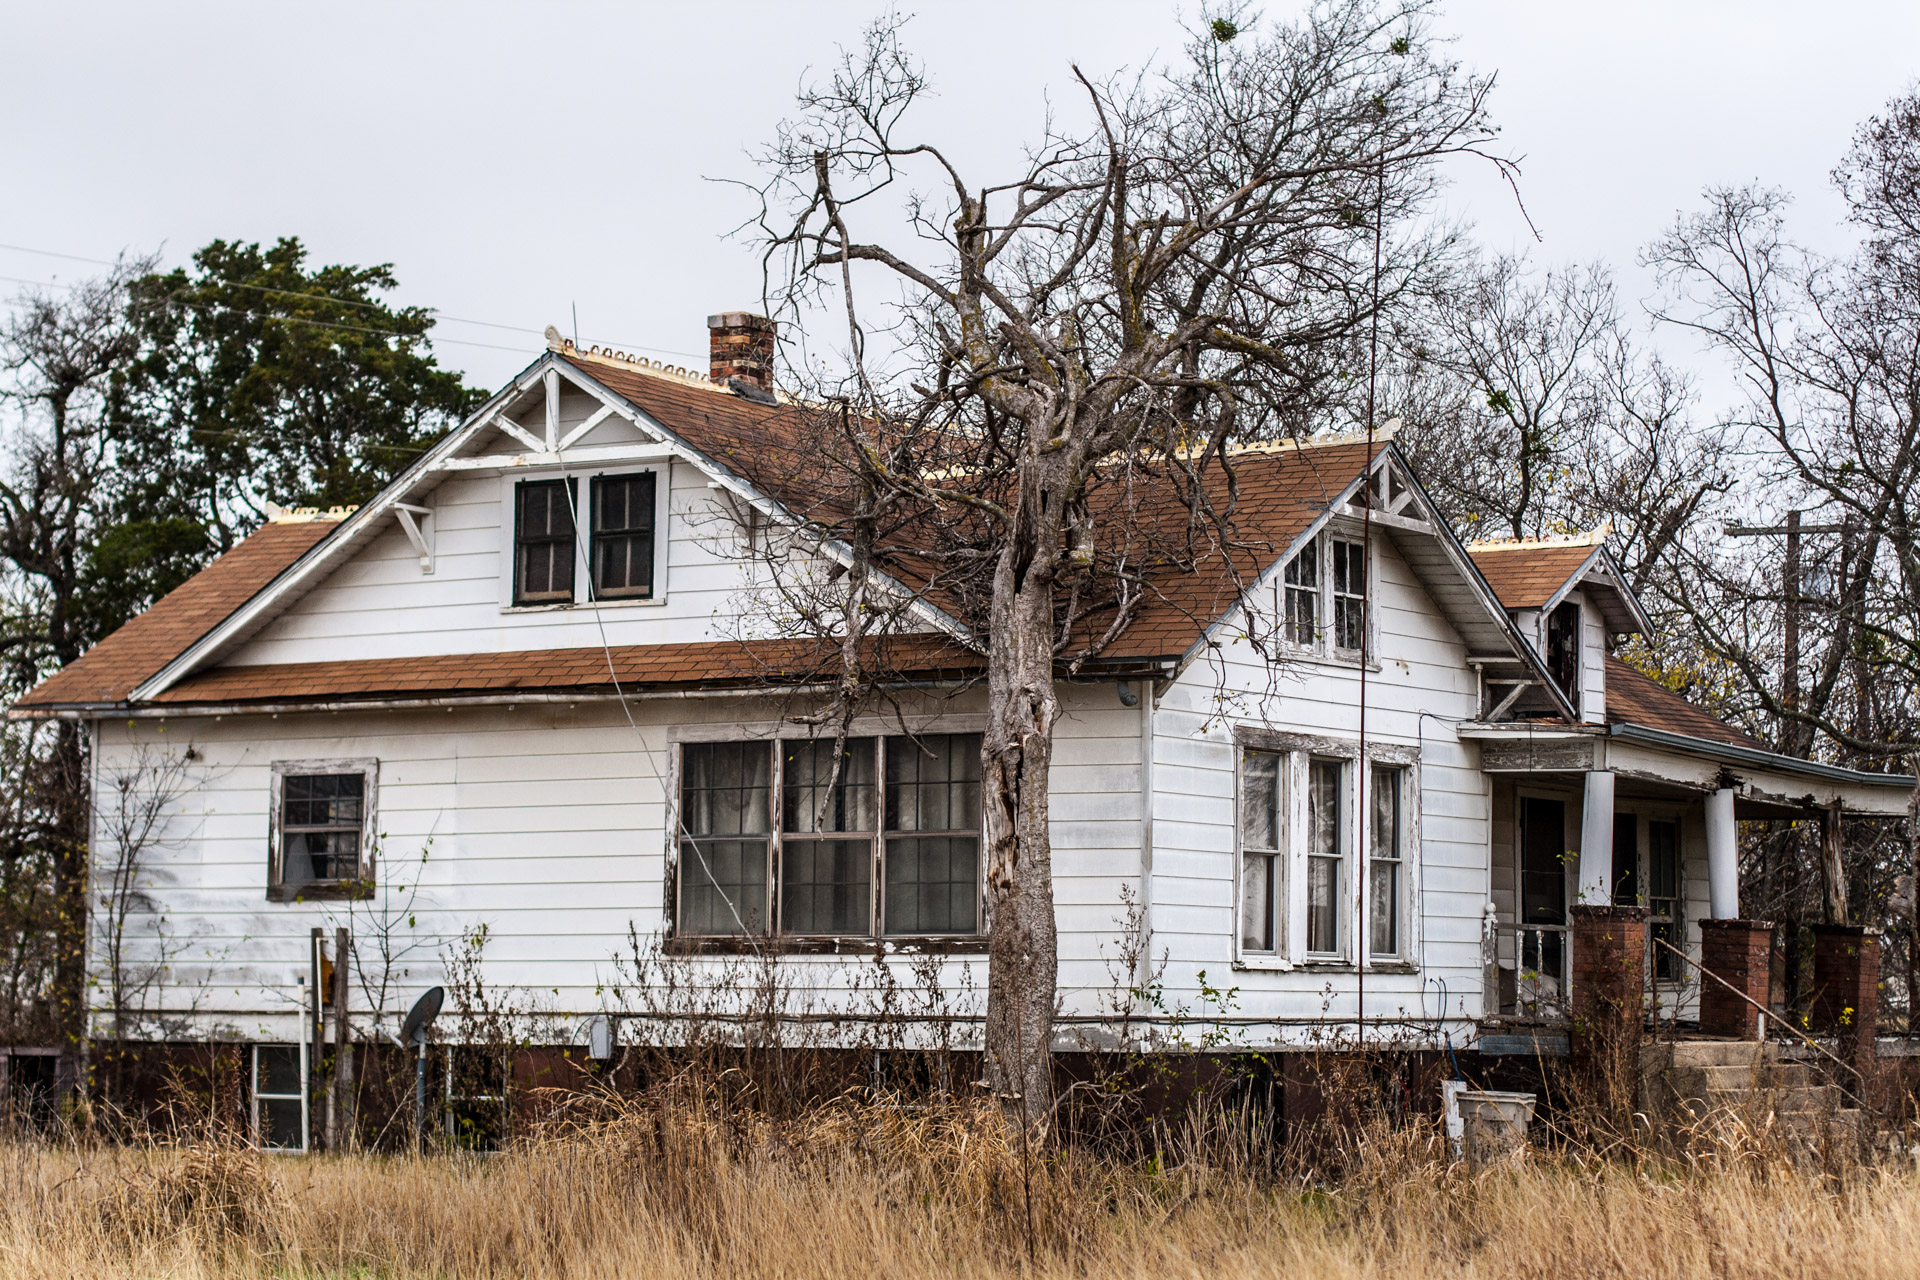 Buckholts, Texas - The Two Front Door House (side)